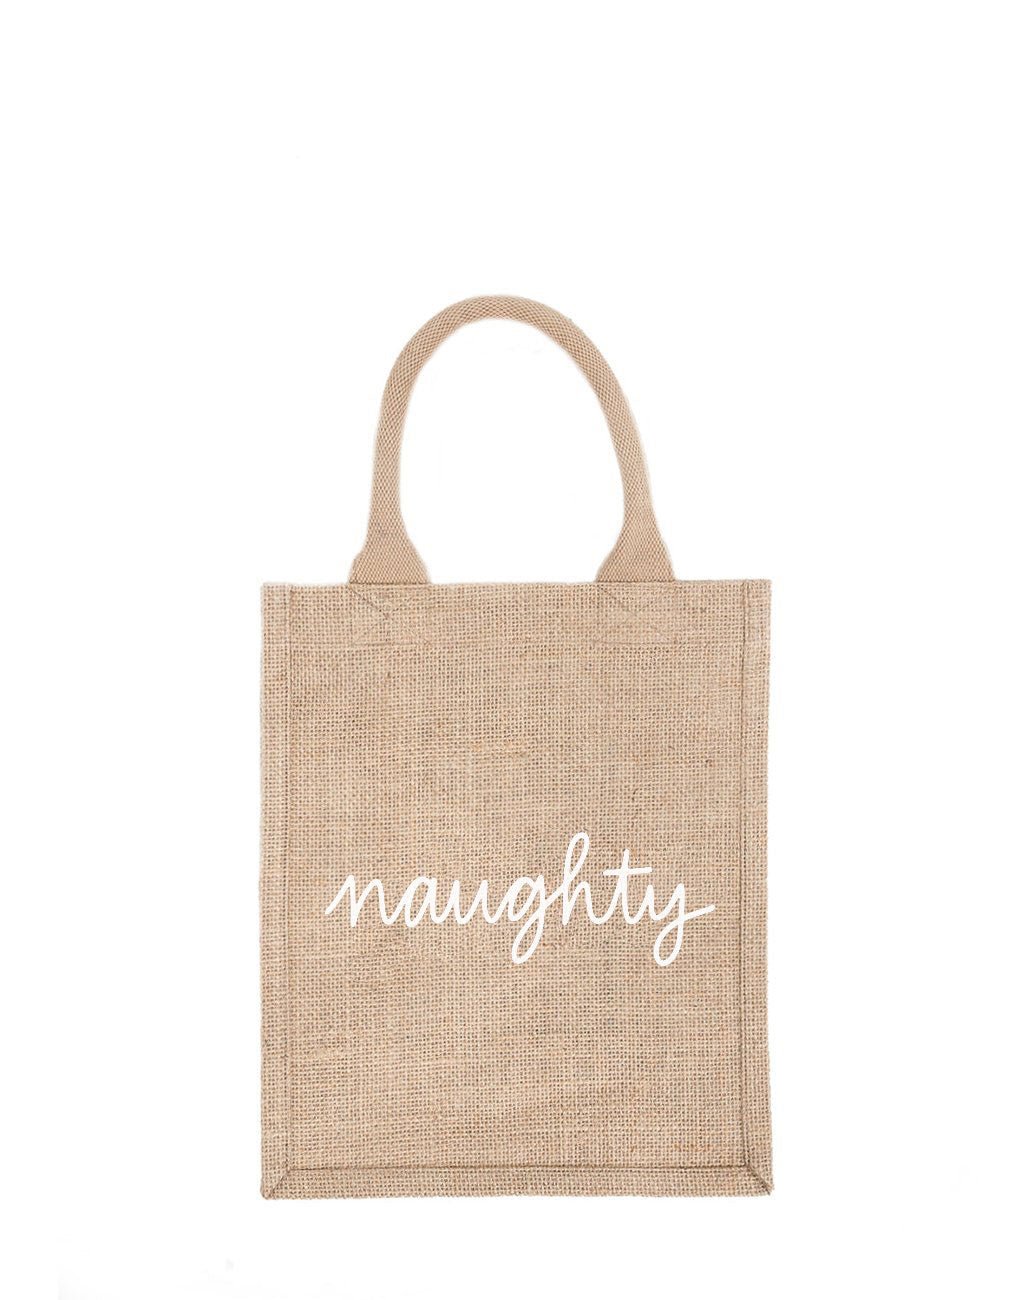 Medium Naughty Reusable Gift Tote In White Font | The Little Market